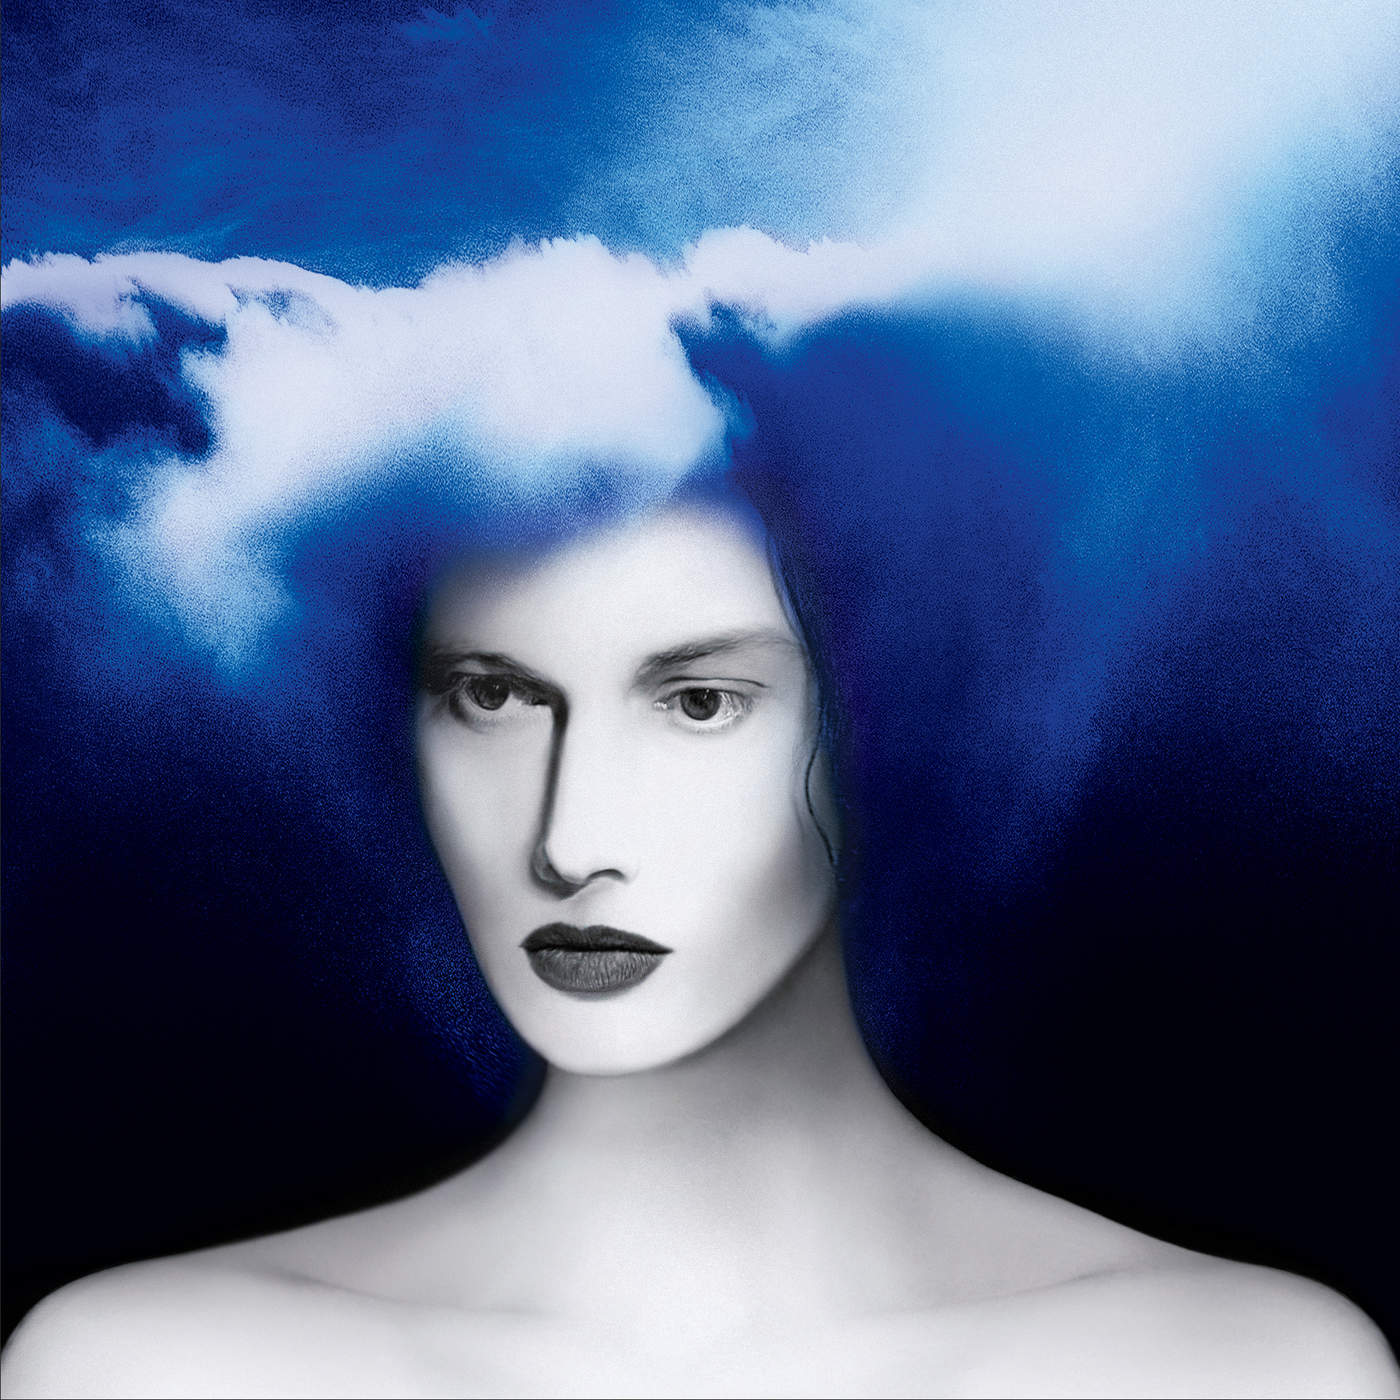 Boarding House Reach by Jack White (Image retrieved from iTunes-purchased MP3 file)